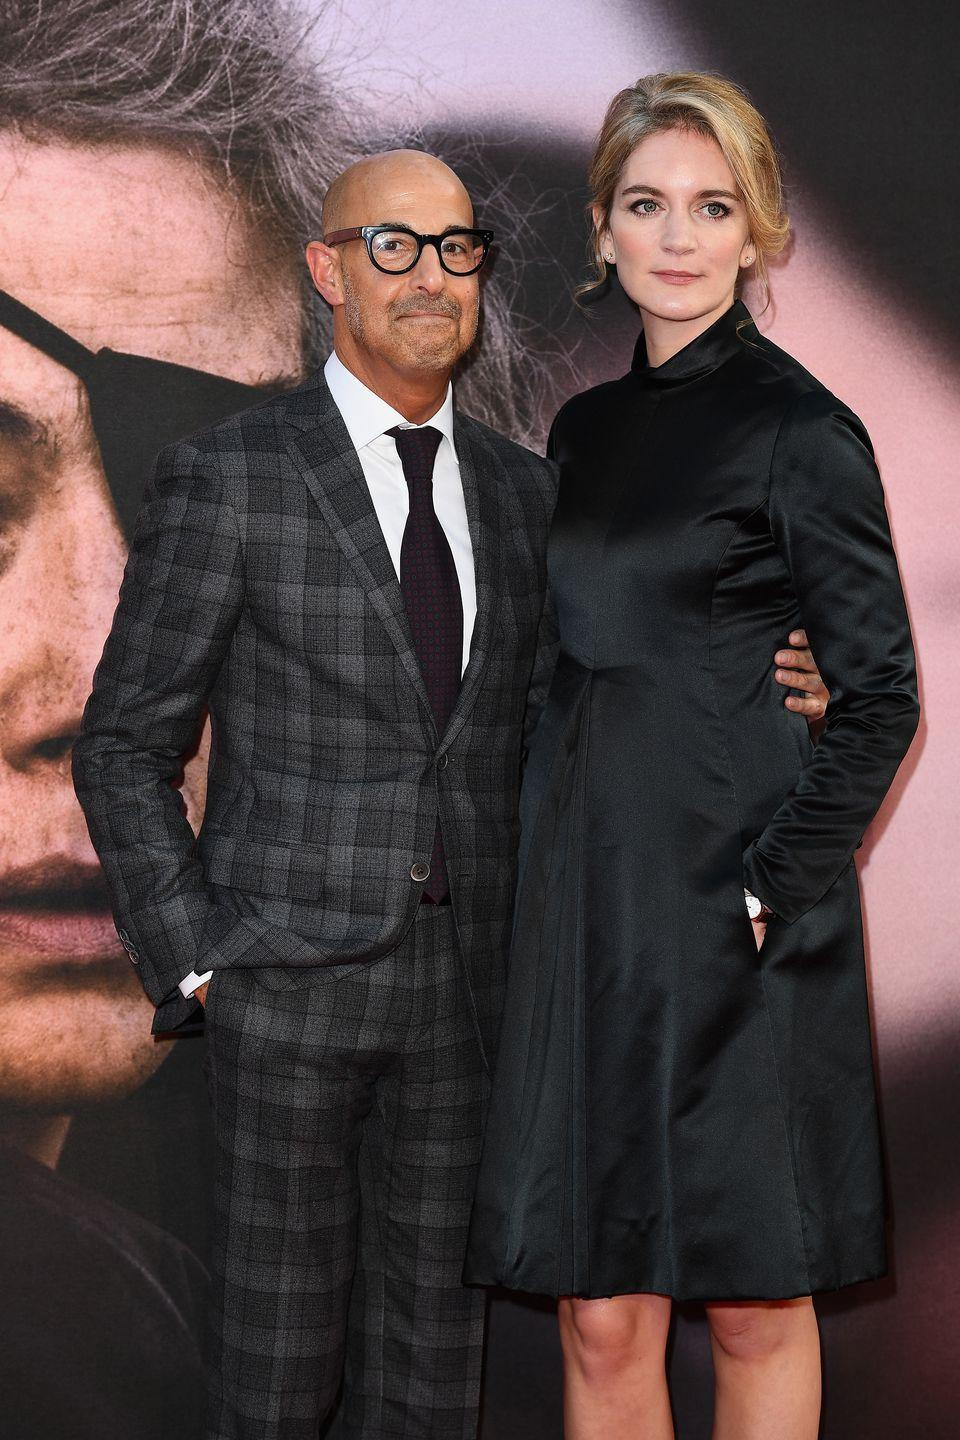 """<p>Emily Blunt later played Cupid herself, introducing her sister Felicity to her <em>The Devil Wears Prada</em> costar Stanley Tucci. <a href=""""https://www.marieclaire.com/celebrity/a26114333/who-is-felicity-blunt/"""" rel=""""nofollow noopener"""" target=""""_blank"""" data-ylk=""""slk:Sparks flew"""" class=""""link rapid-noclick-resp"""">Sparks flew</a> between the pair at Blunt and Krasinski's wedding, and they tied their own knot in 2012.</p>"""